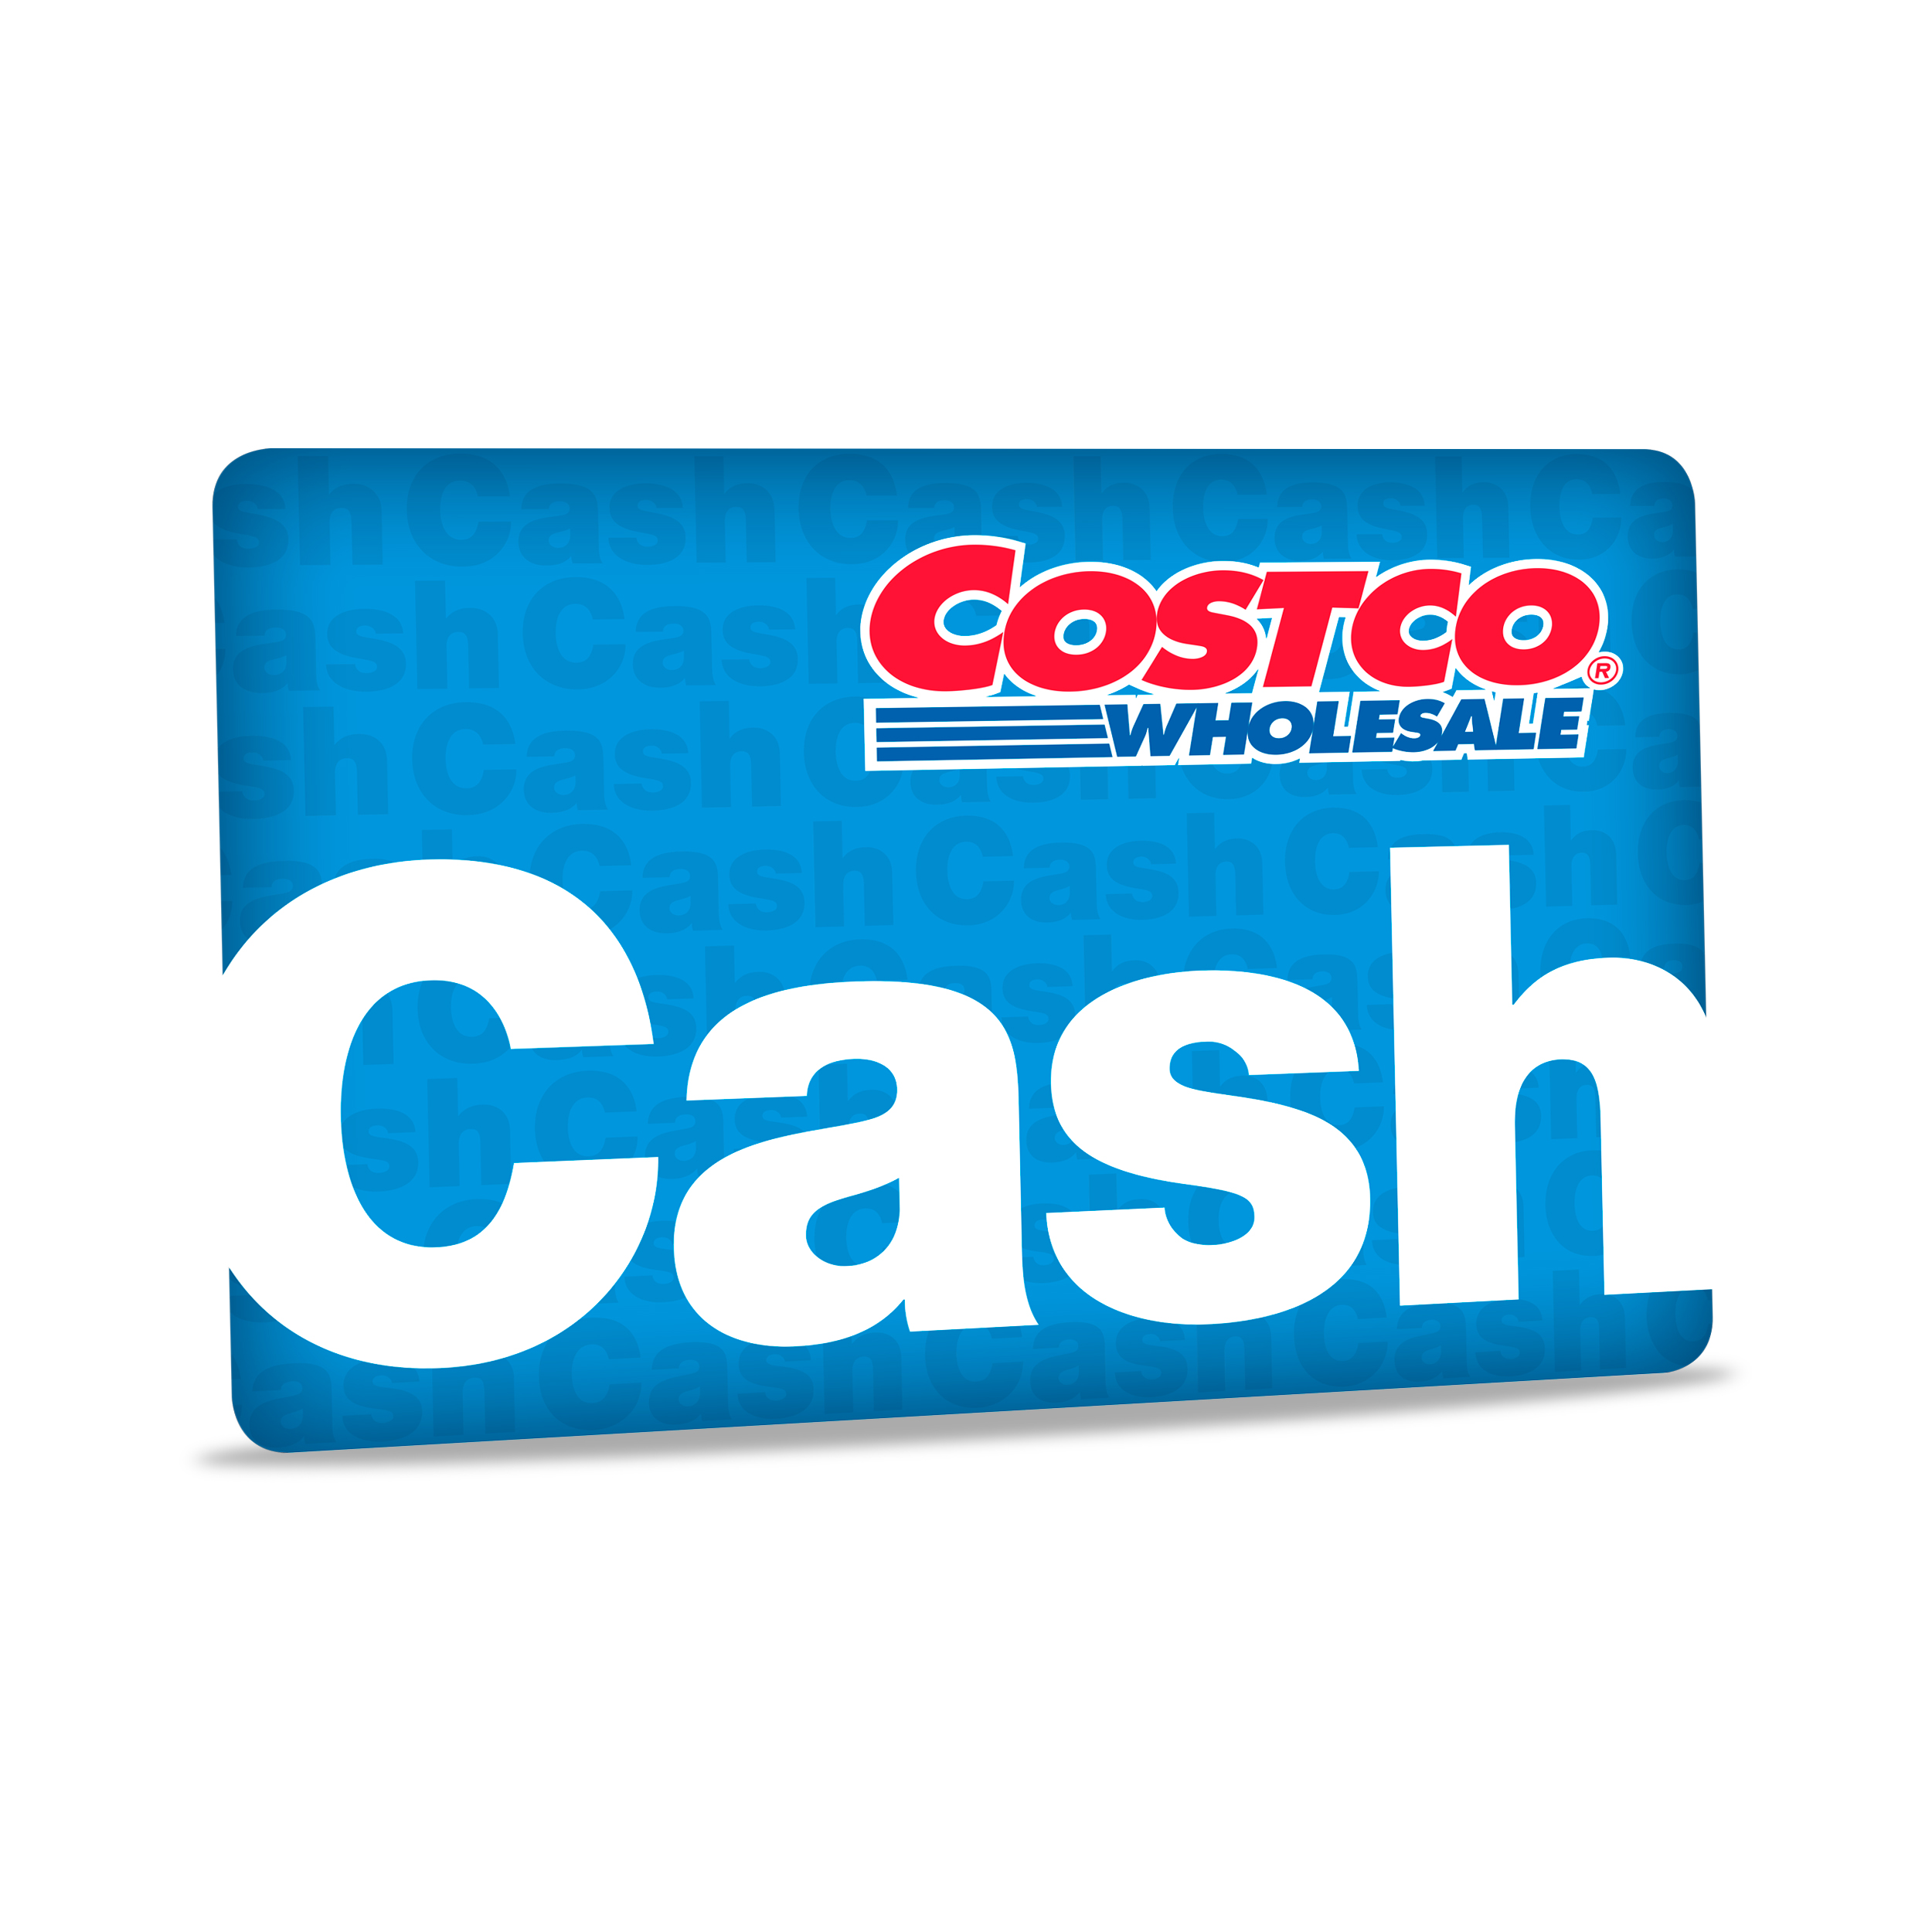 $1200 Costco gift card  - Redeemable in all Costco warehouses and online at Costco.ca - No expiry date - Can be used at Costco gas stations